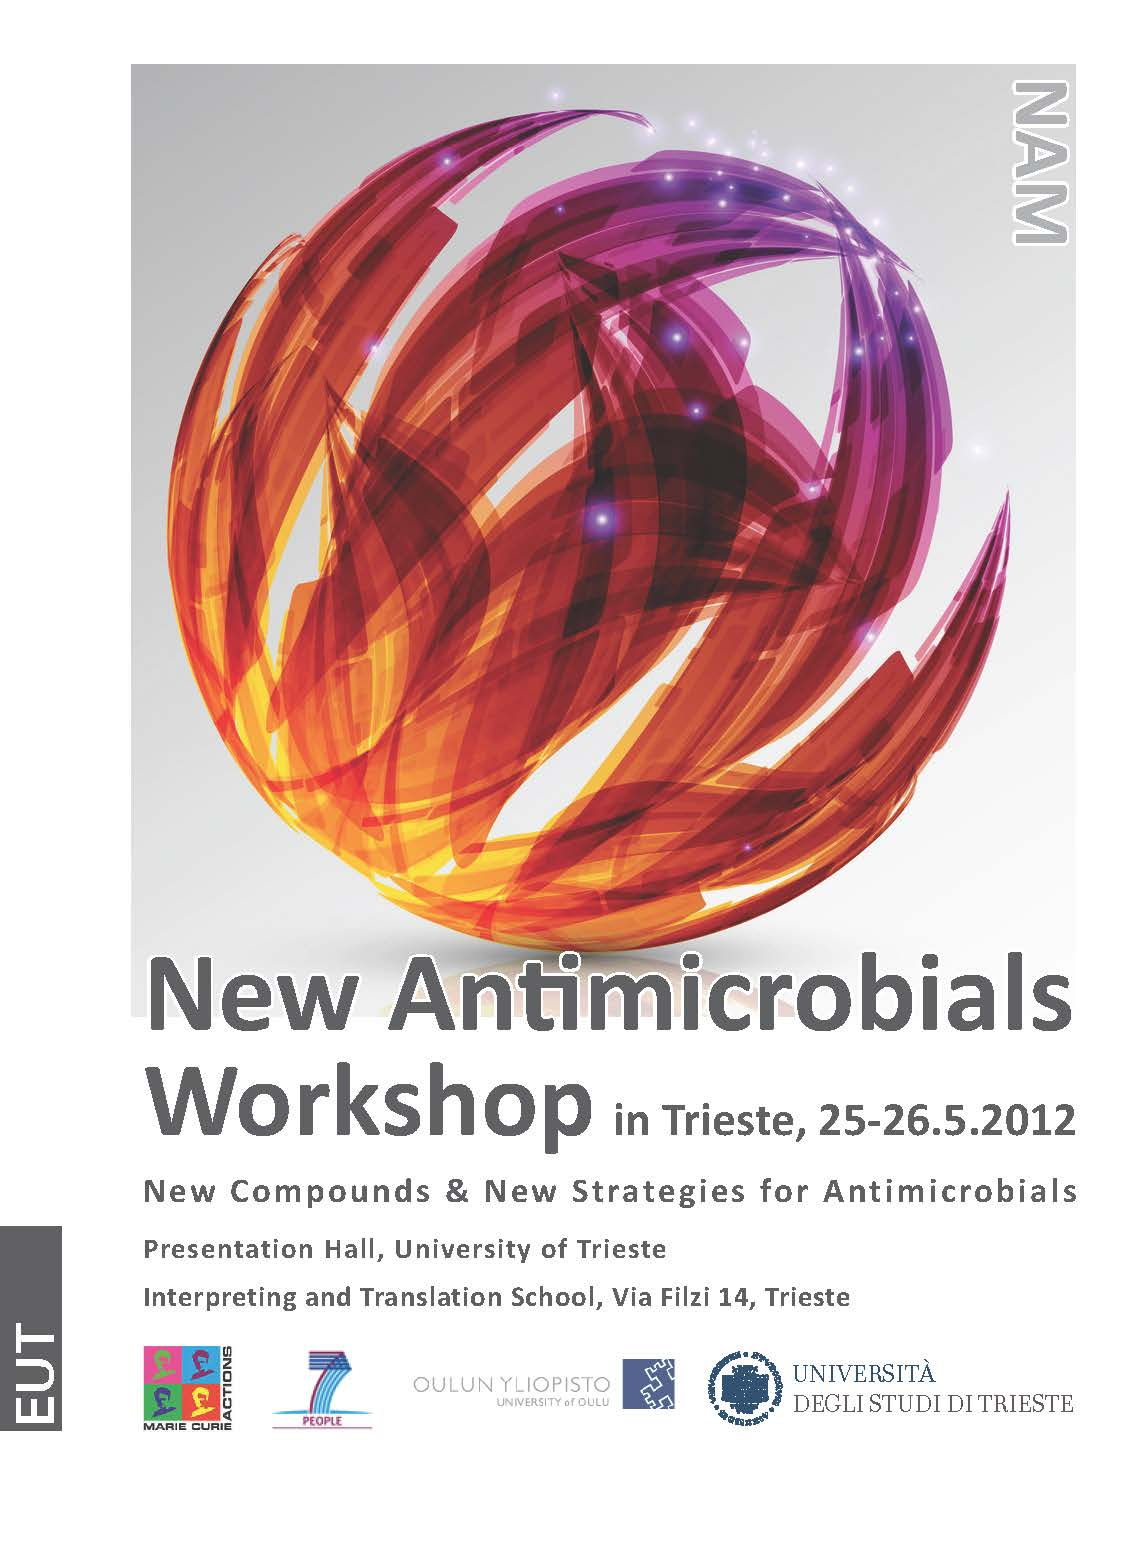 New Antimicrobials Project, 2nd Workshop. New Compounds and New Strategies for Antimicrobials. University of Trieste, 25-26.5.2012